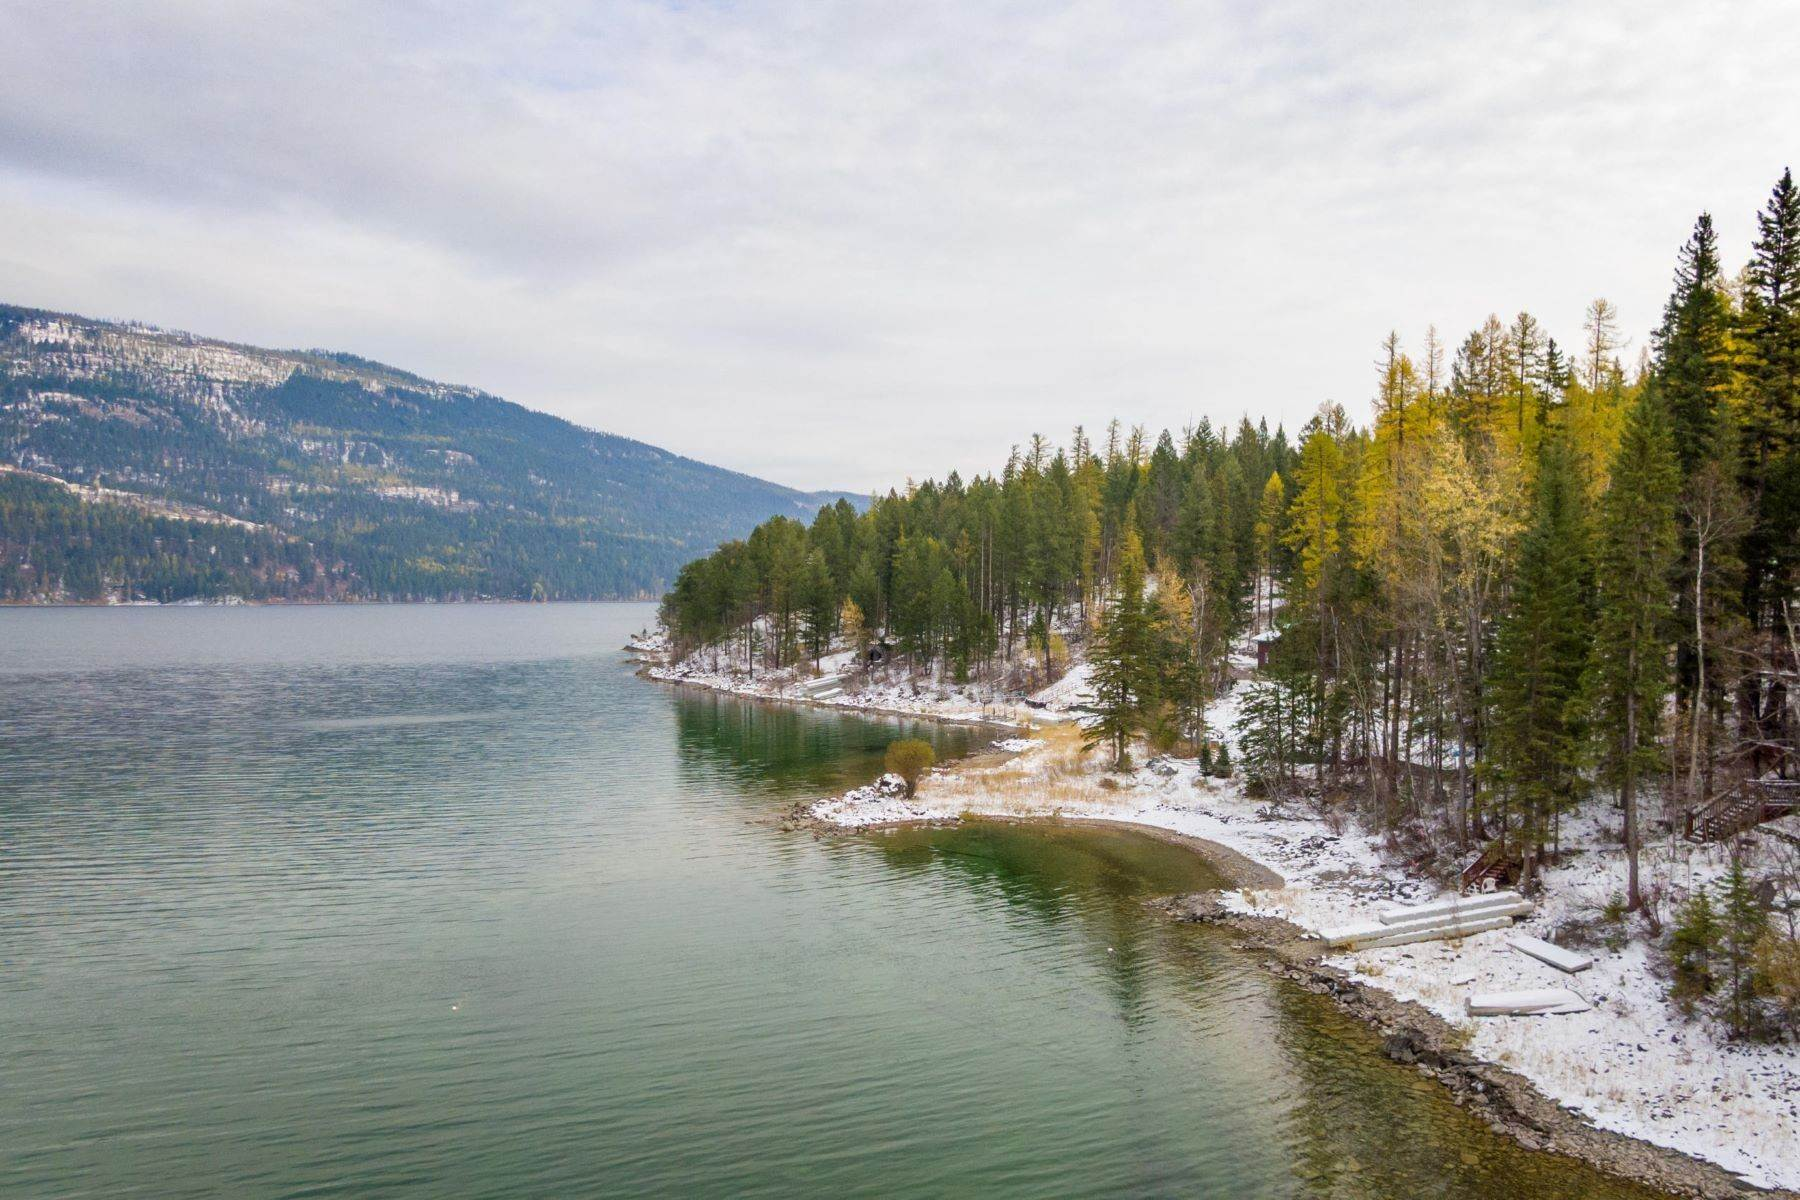 Single Family Homes for Sale at Whitefish Lake Frontage 737 Delrey Road Whitefish, Montana 59937 United States